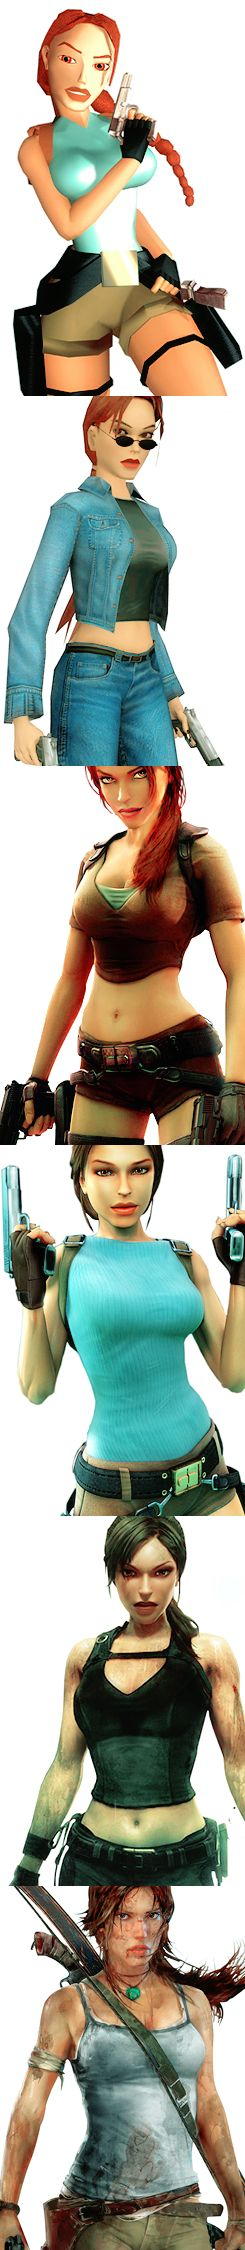 The evolution of Lara Croft. I don't know how they did it, but they finally managed to make her relatable, lovable, and badass. Bravo, Square Enix.